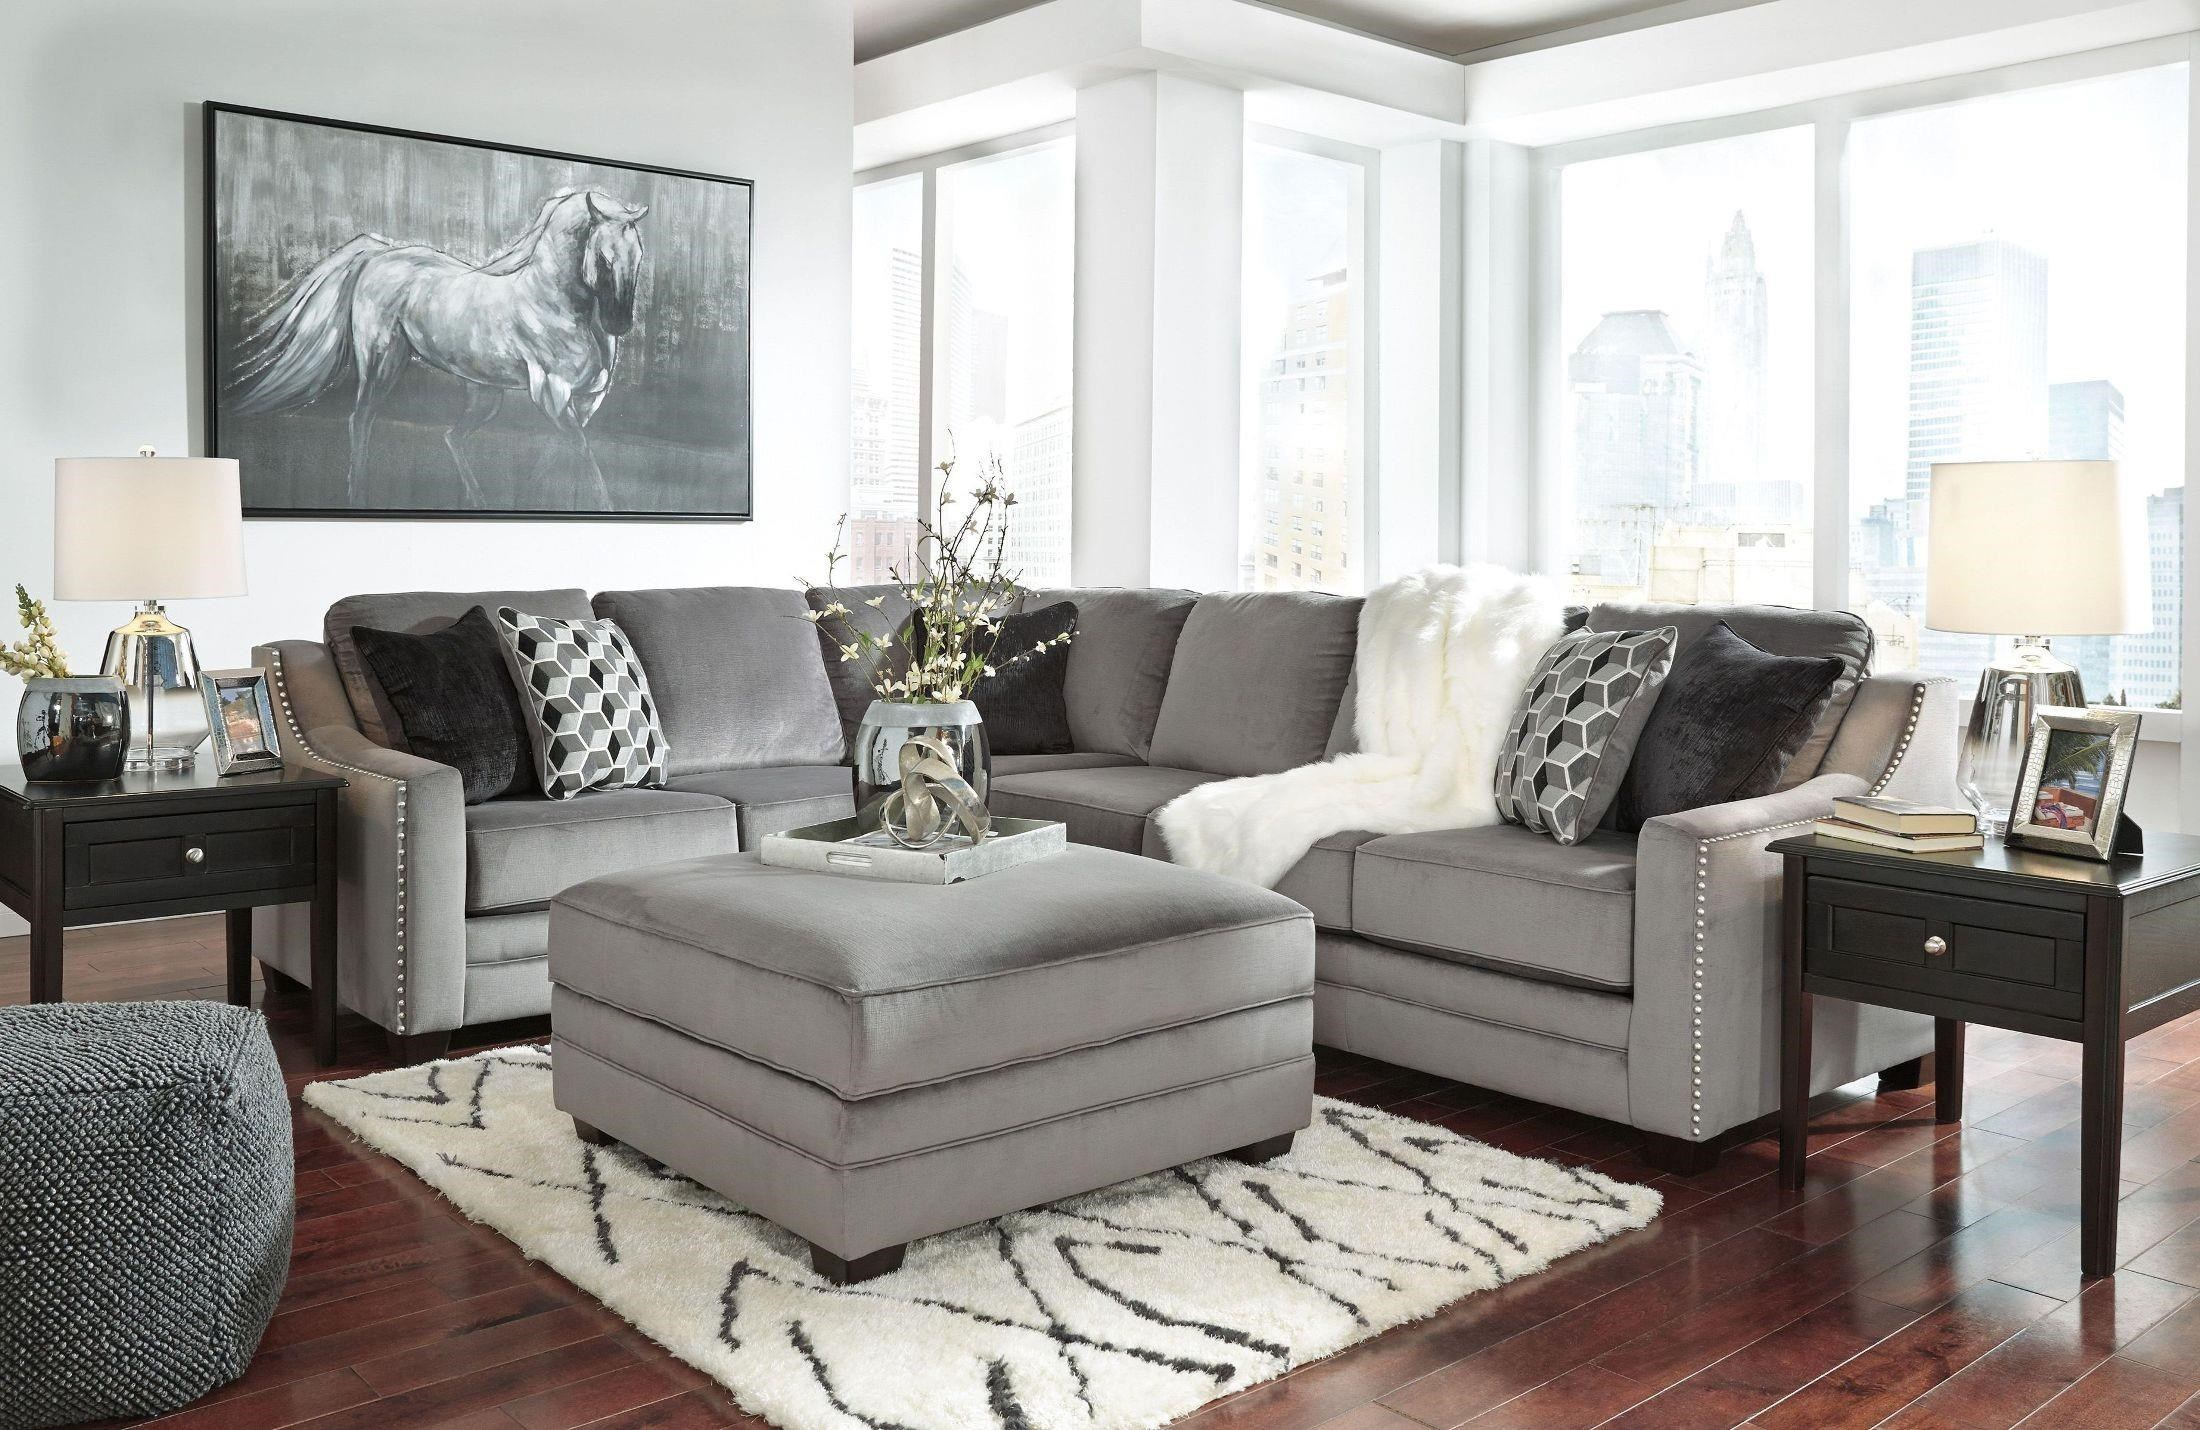 Ashley Furniture Bicknell Sectional  sc 1 st  Boulevard Home Furnishings : ashley furniture modular sectional - Sectionals, Sofas & Couches